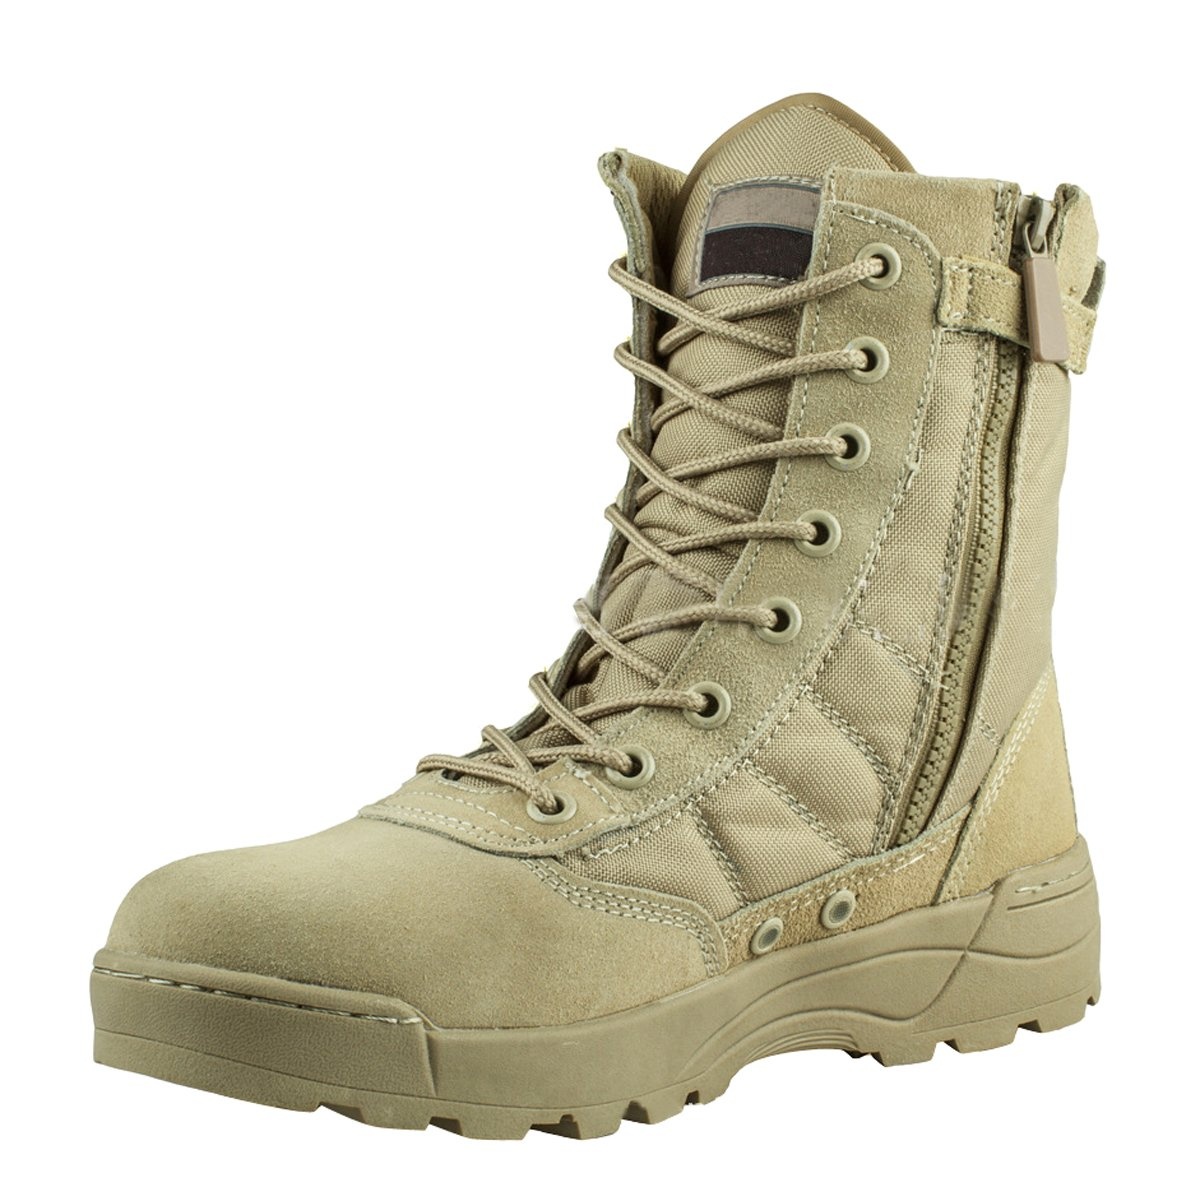 VFDB Men Military Tactical Combat Boots Lace up Desert Boots Side-Zip Outdoor Hiking Boot US 10